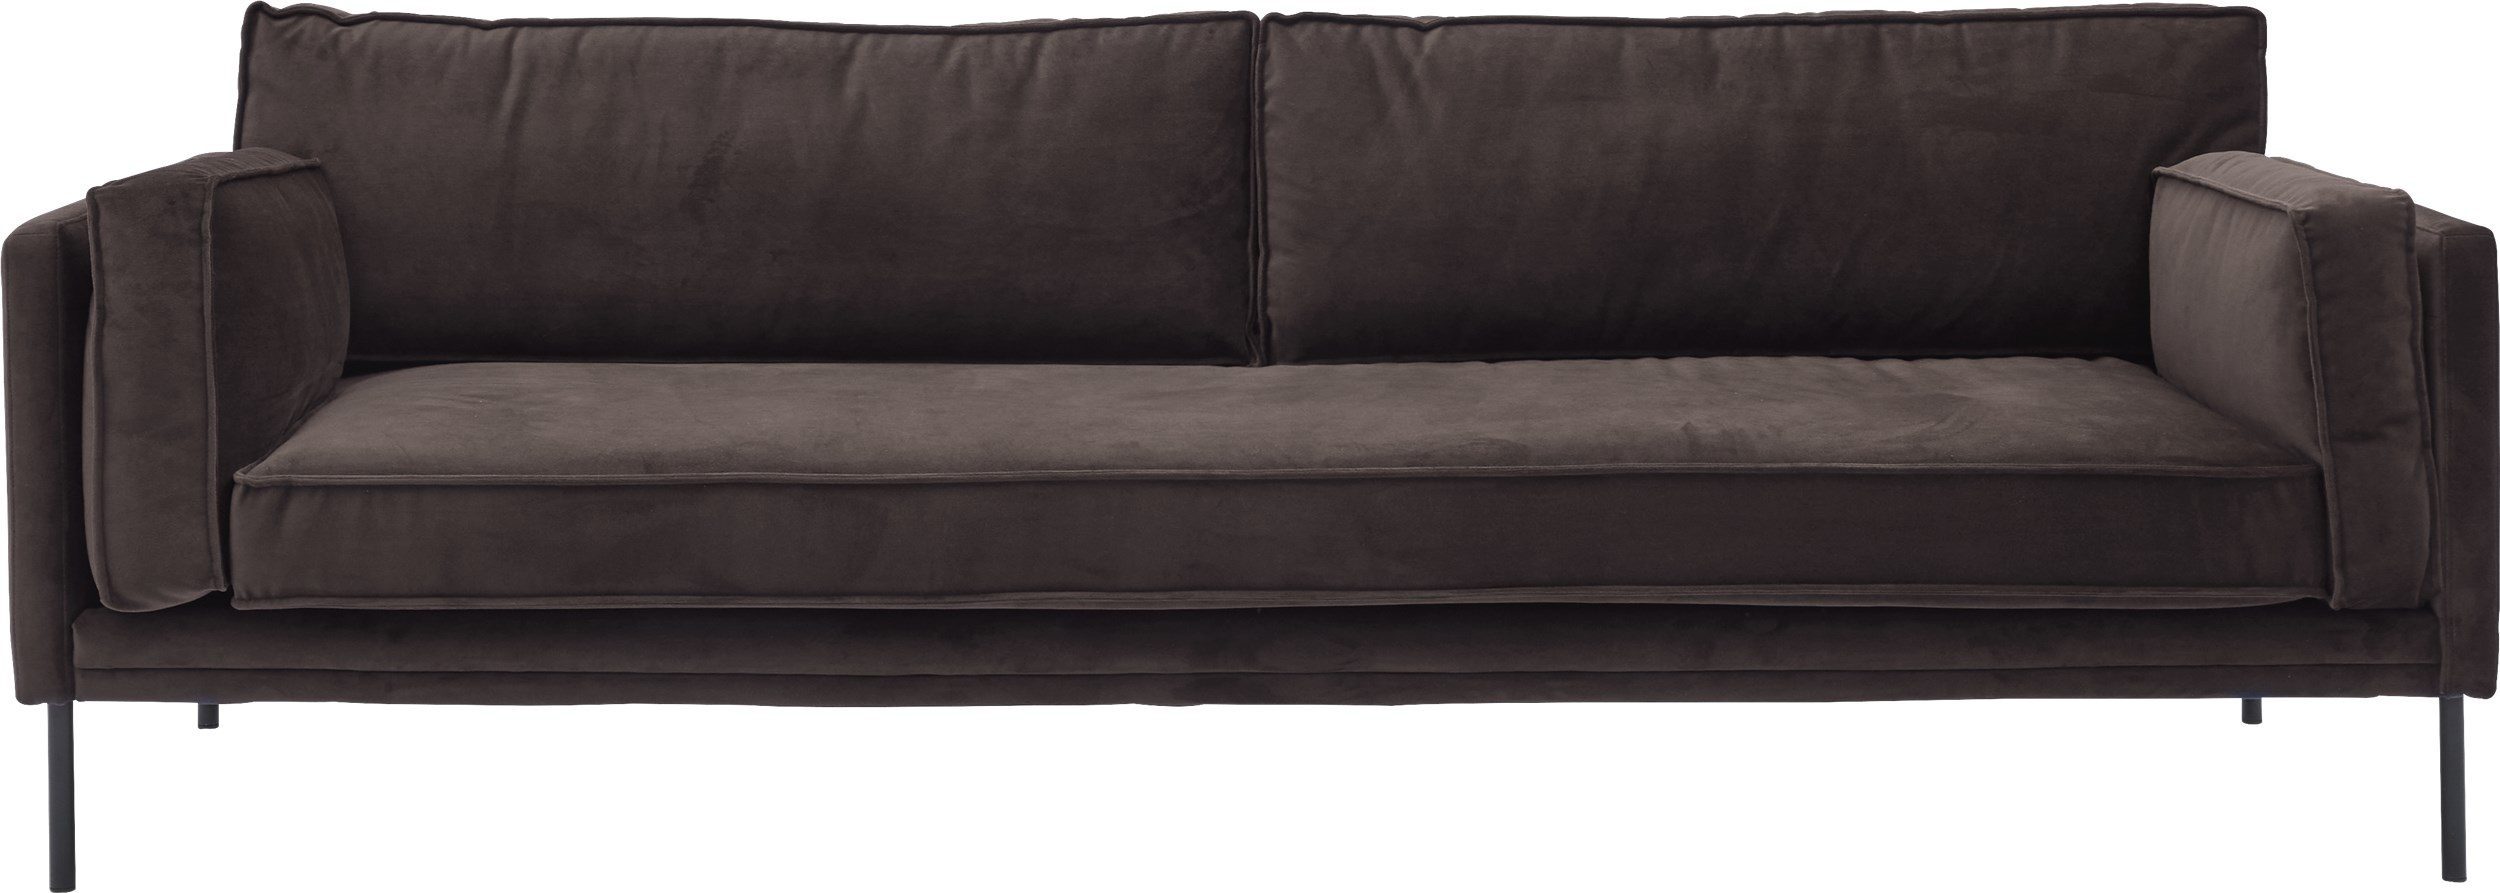 Keep 3 pers Sofa - Toro 6839 Dark Grey stof og ben i sort metal